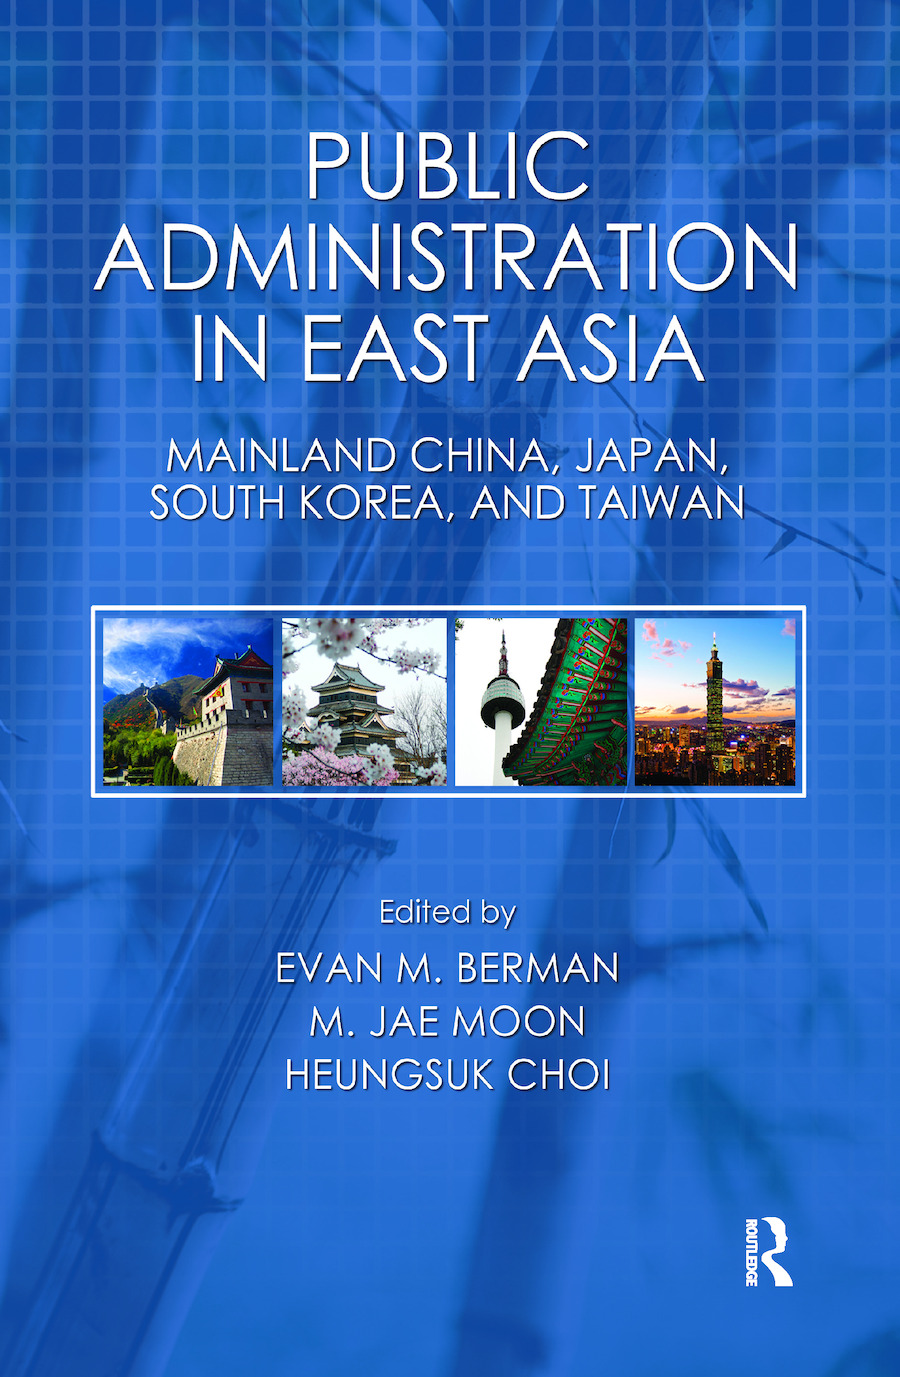 Public Administration in East Asia: Mainland China, Japan, South Korea, Taiwan, 1st Edition (Hardback) book cover